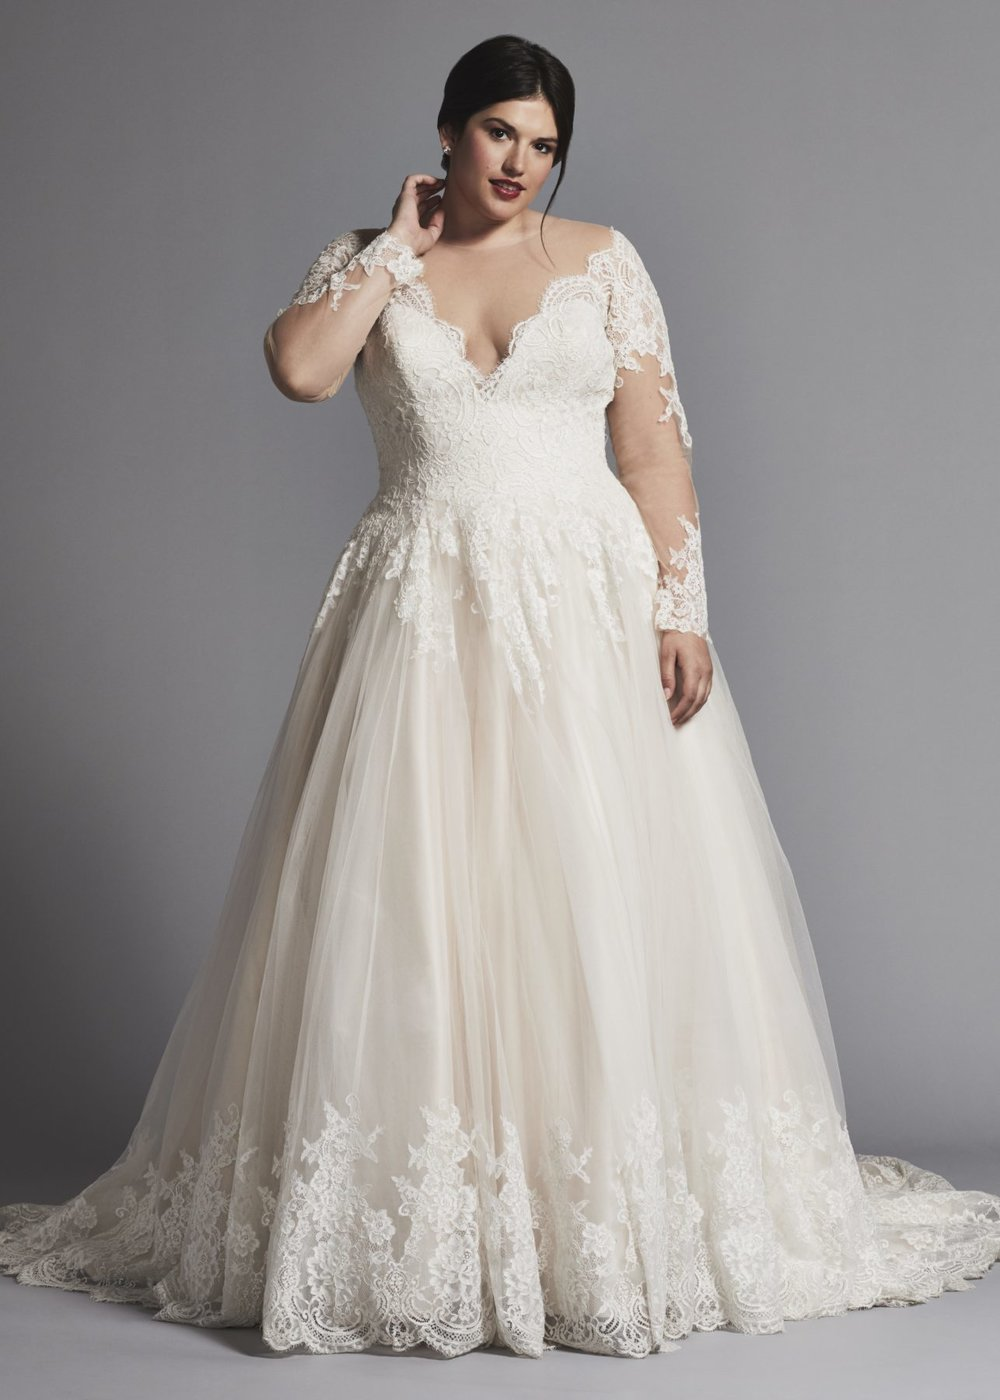 A-LINE LACE WEDDING DRESS WITH ILLUSION LONG SLEEVES by DANIELLE CAPRESE